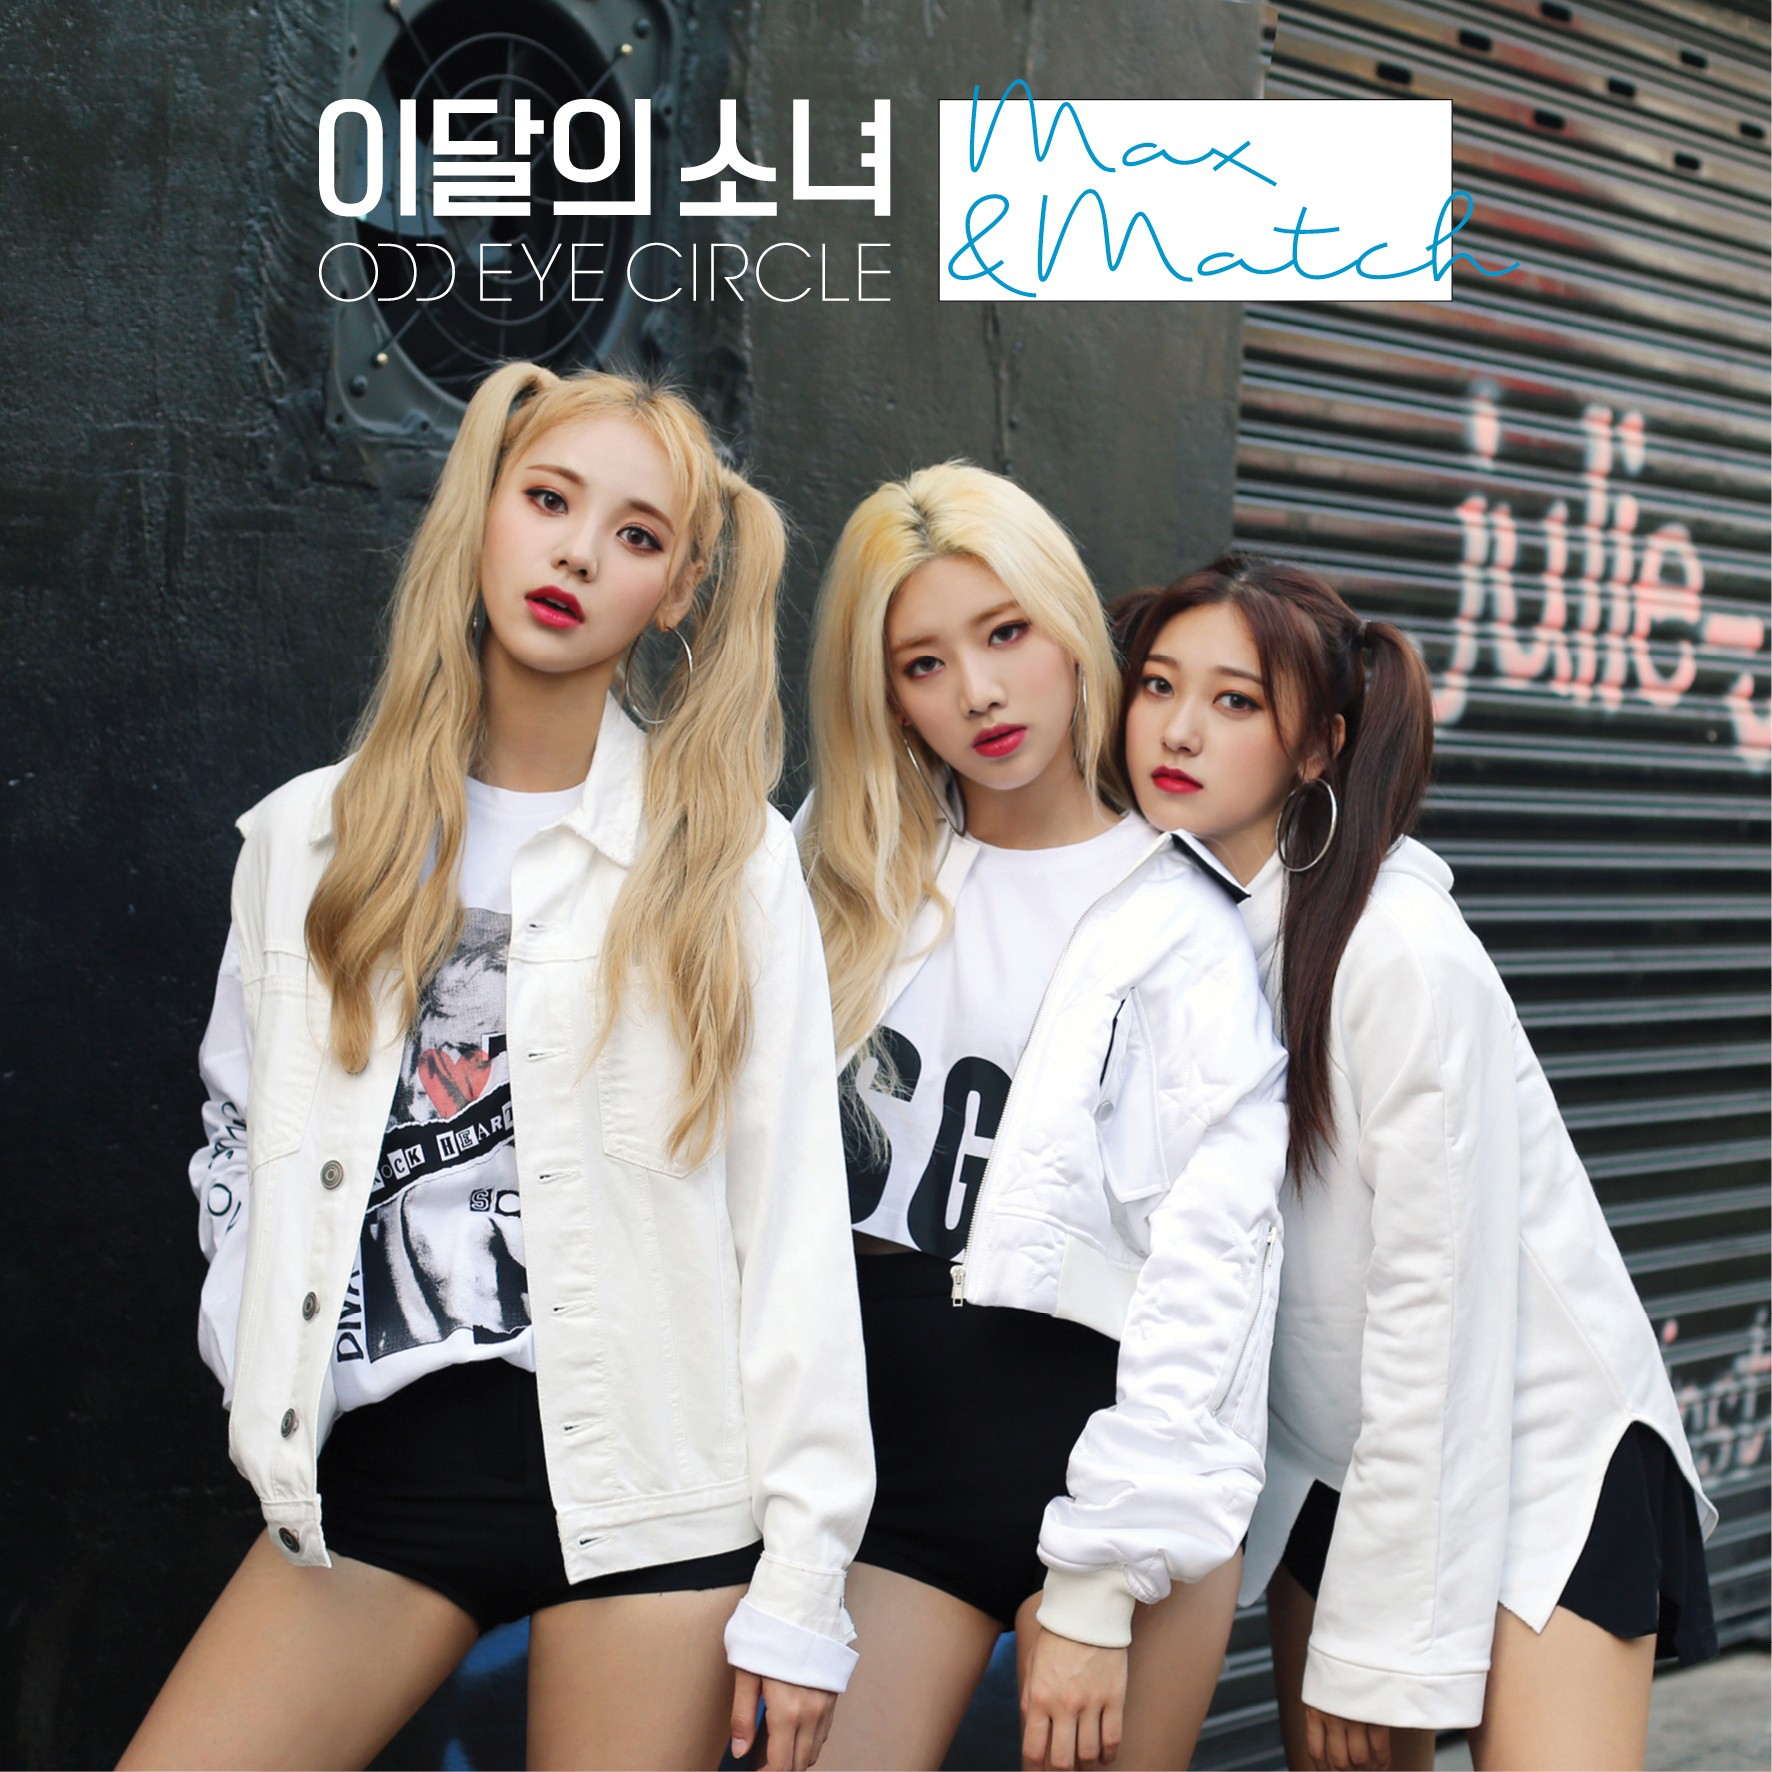 LOONA / ODD EYE CIRCLE (이달의 소녀 오드 아이 써클 ) – Max & Match [FLAC / 24bit Lossless / WEB]  [2017.10.31]